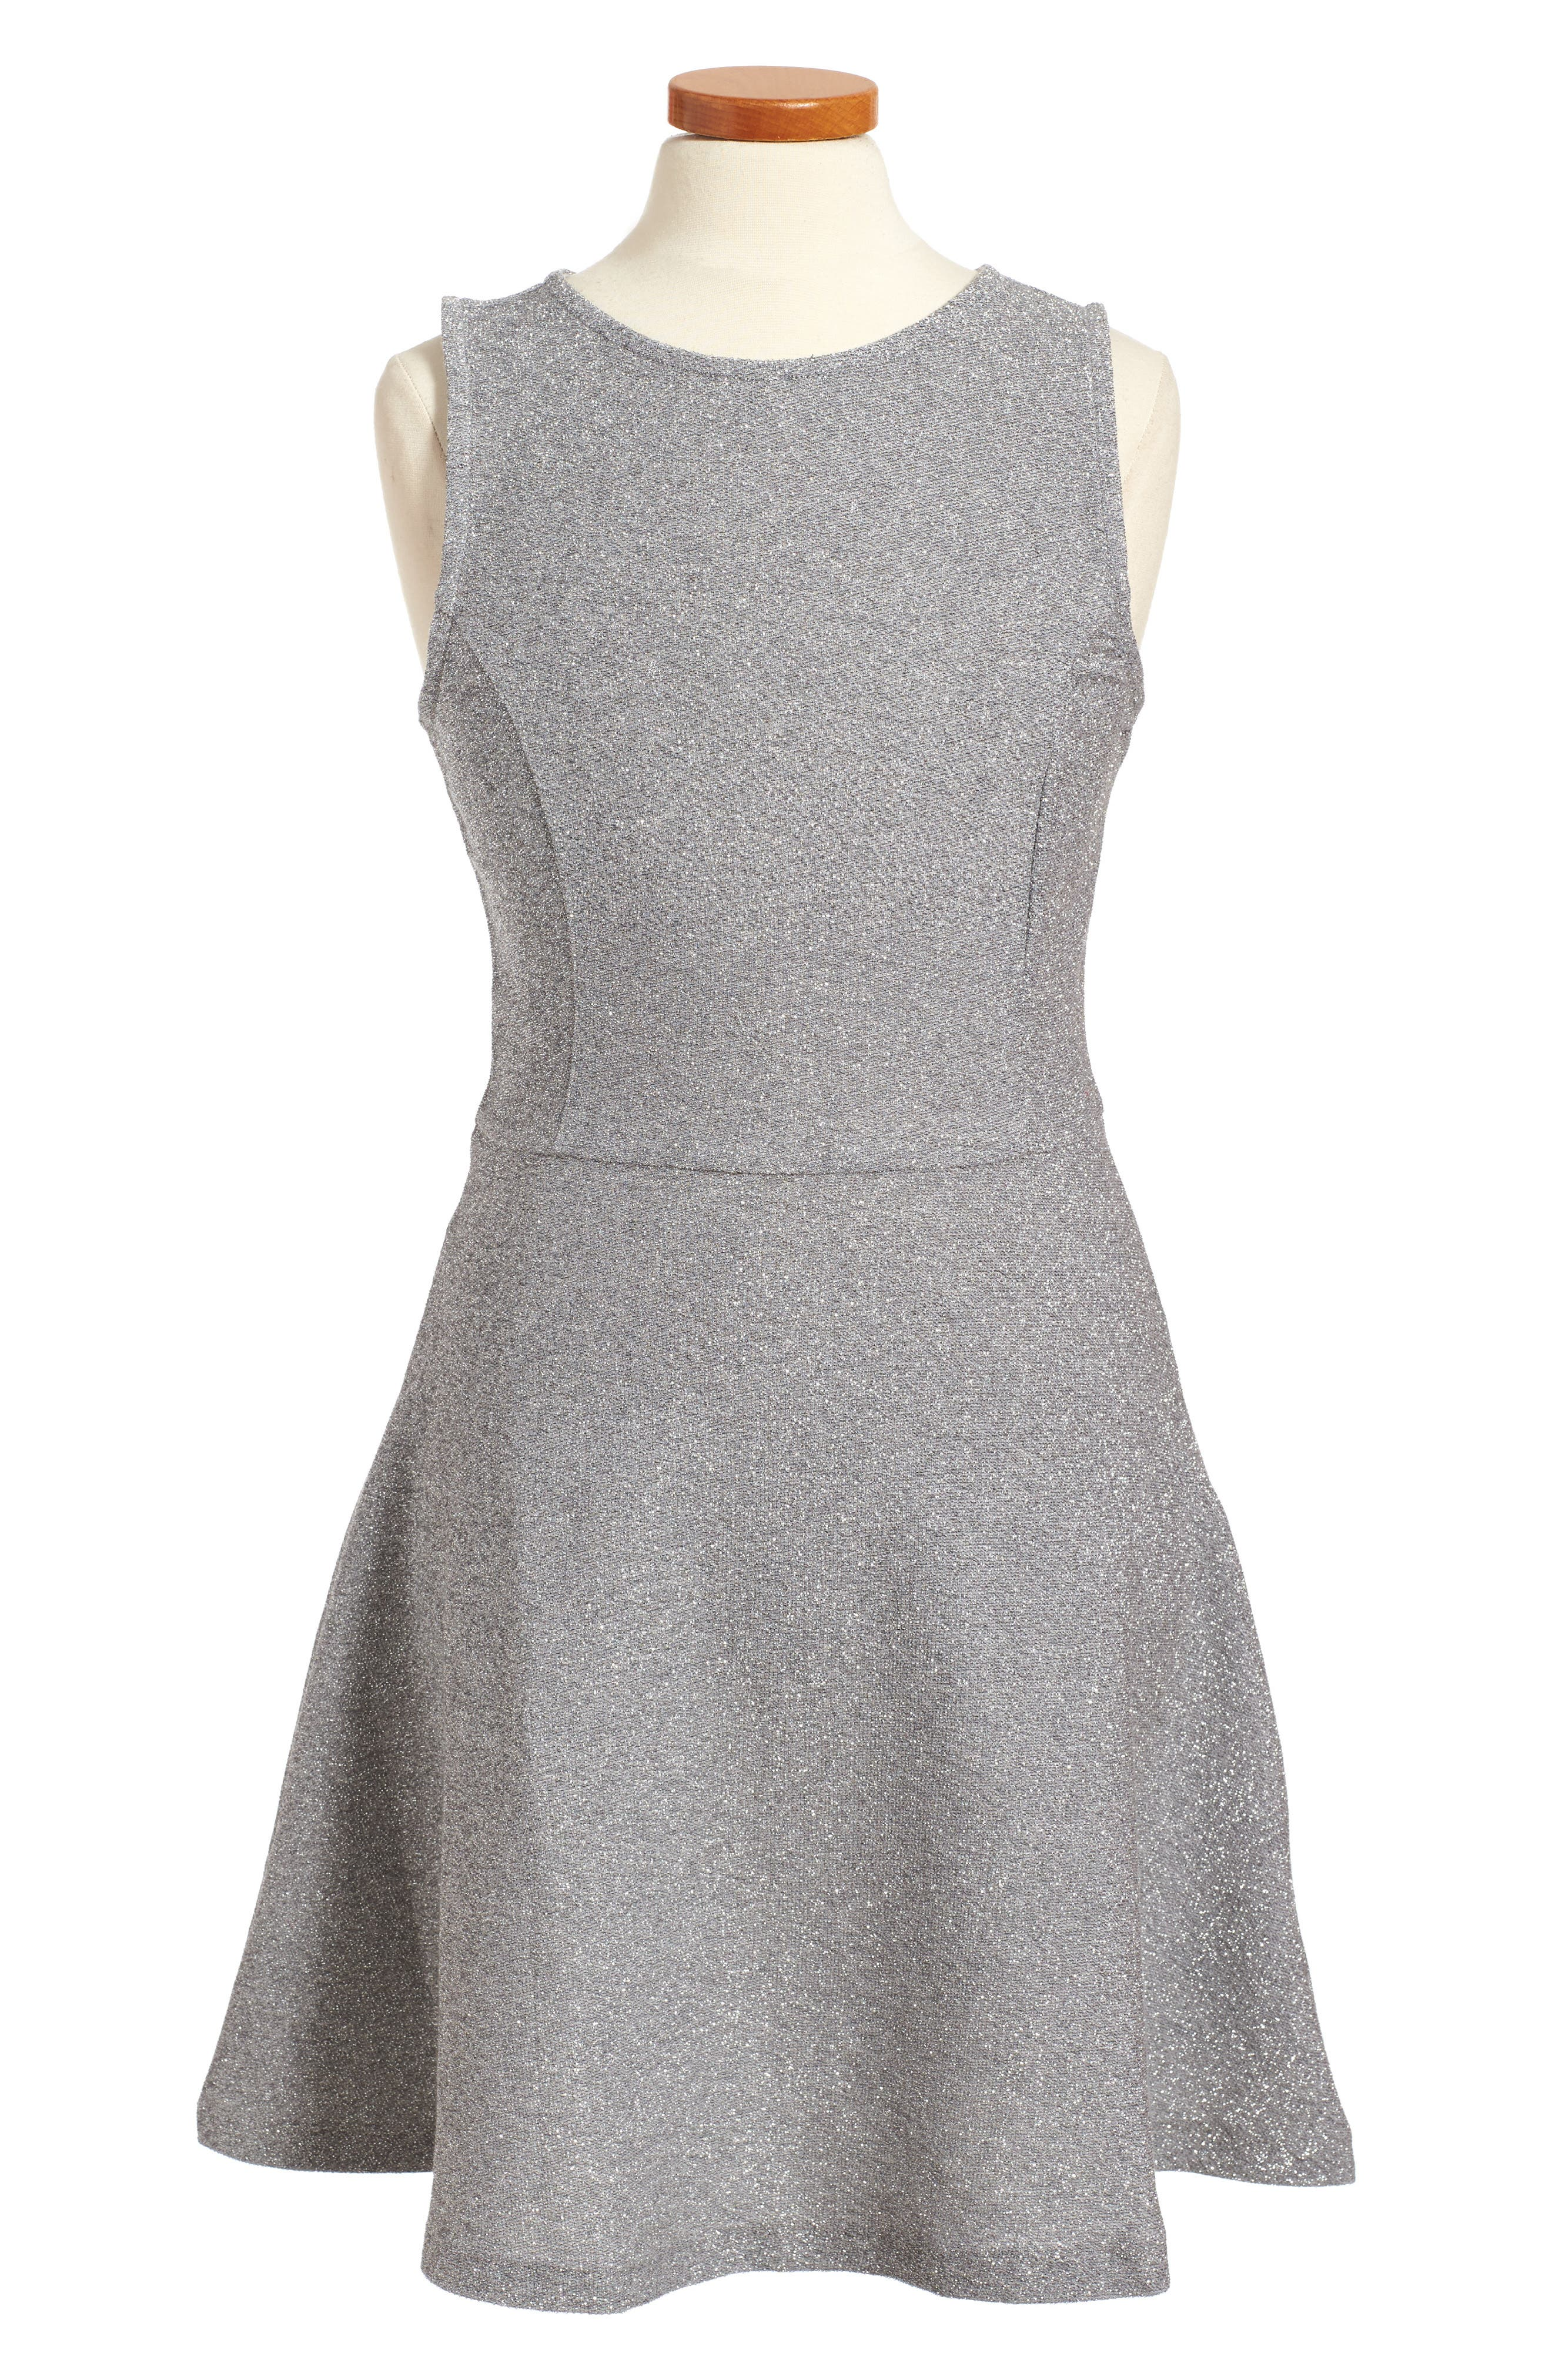 Sparkle Skater Dress,                         Main,                         color, Silver